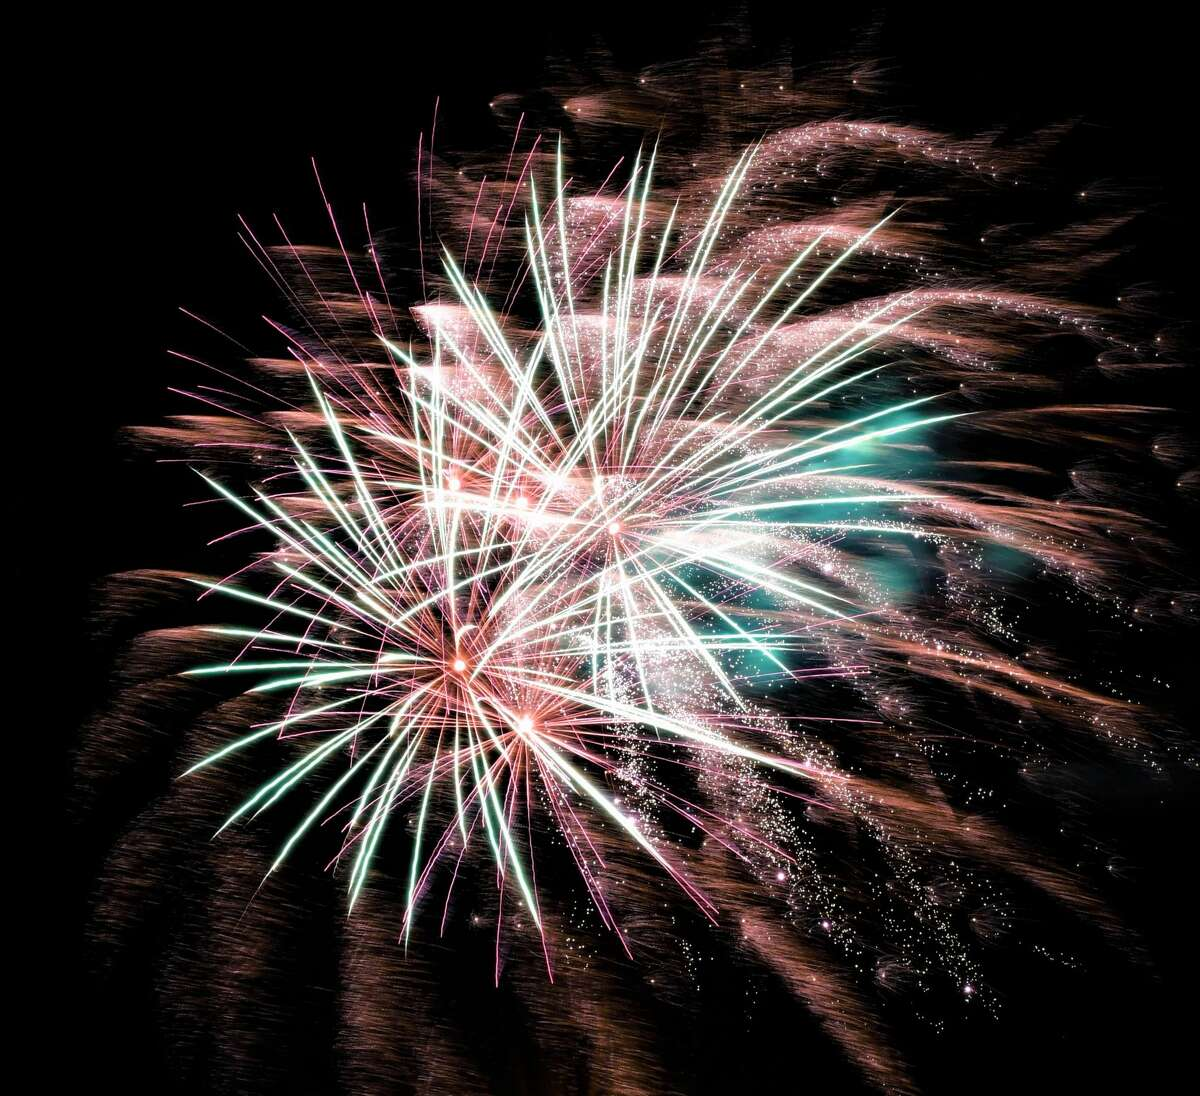 Sunday, July 4: 4th of July Celebration at Freddie Benavides Park, 2201 Zacatecas St, 4-10 p.m. Fireworks at 9 PM. Free entrance to swimming pool from 2-9 PM. Water games, food vendors train rides, watermelon eating contests and more on-site. Limited grilling space available.